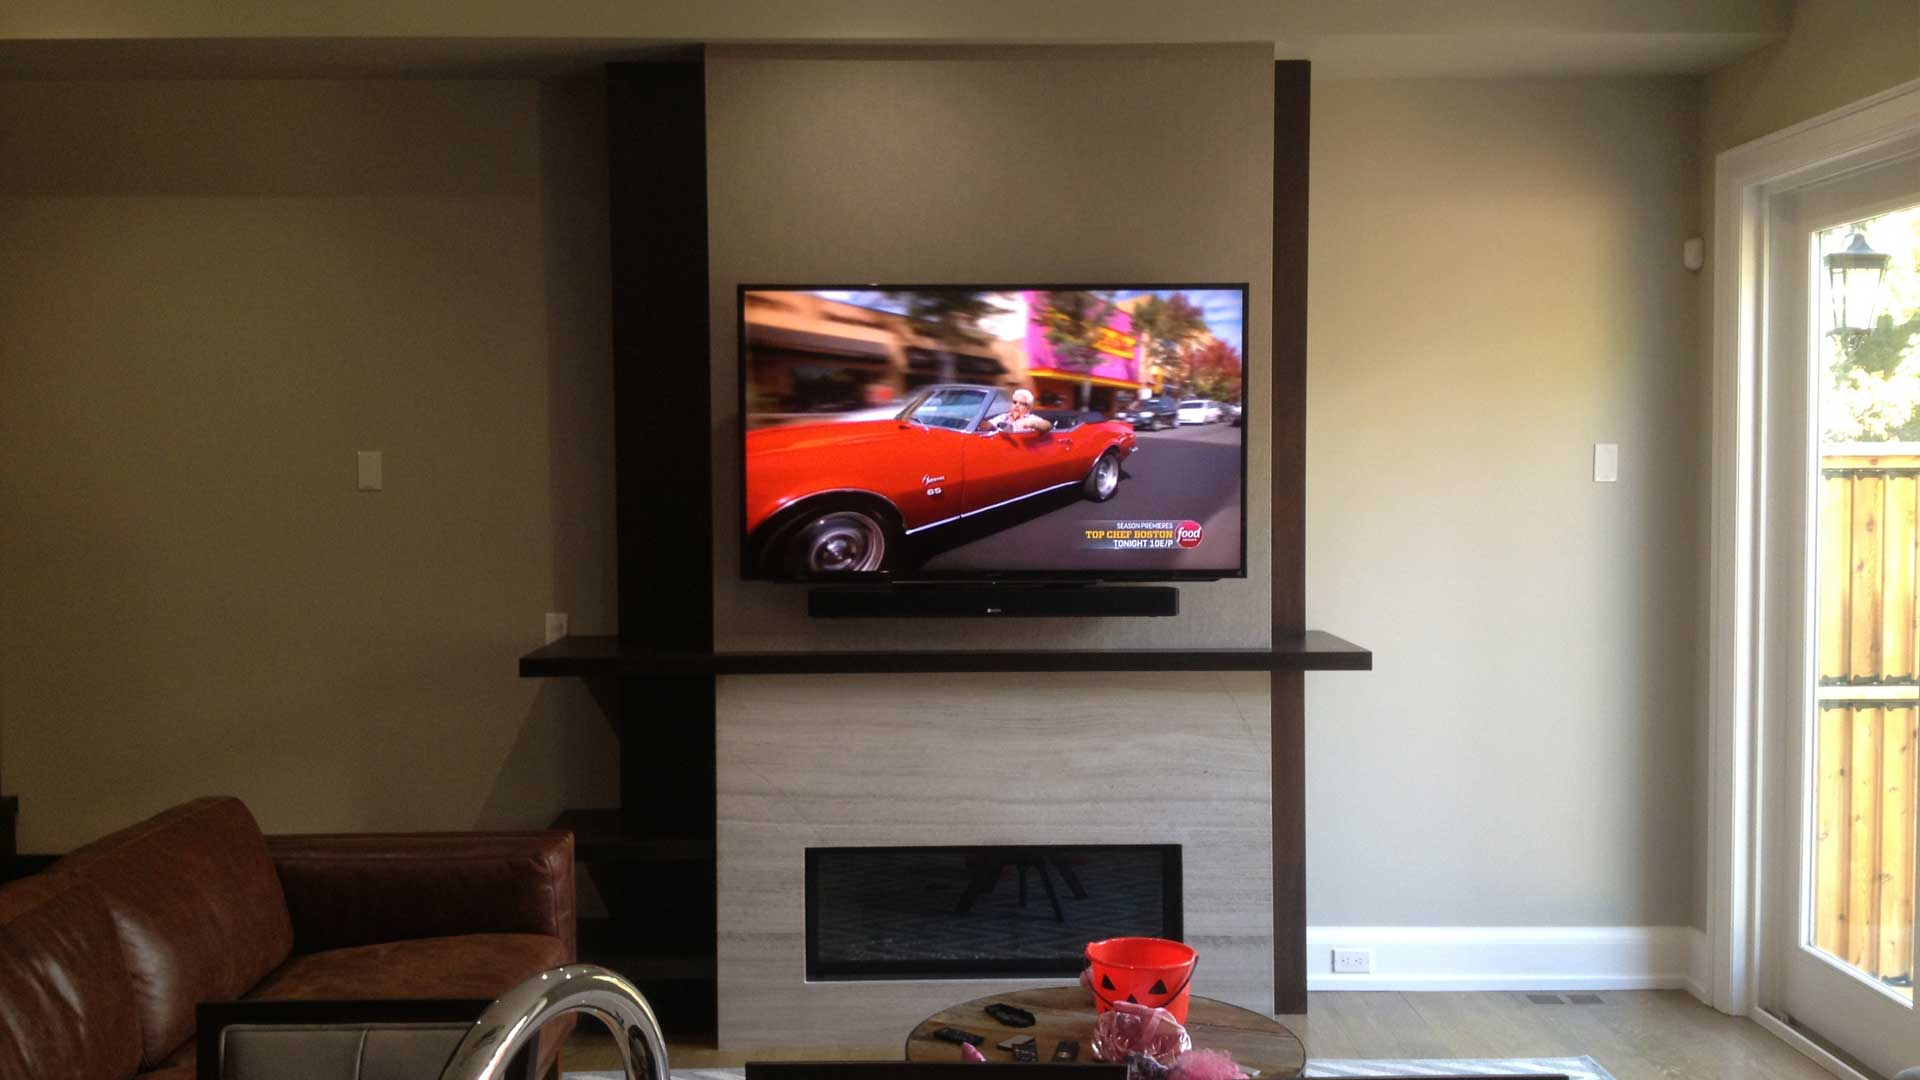 The Complete Guide to Choose TV Size for Wall